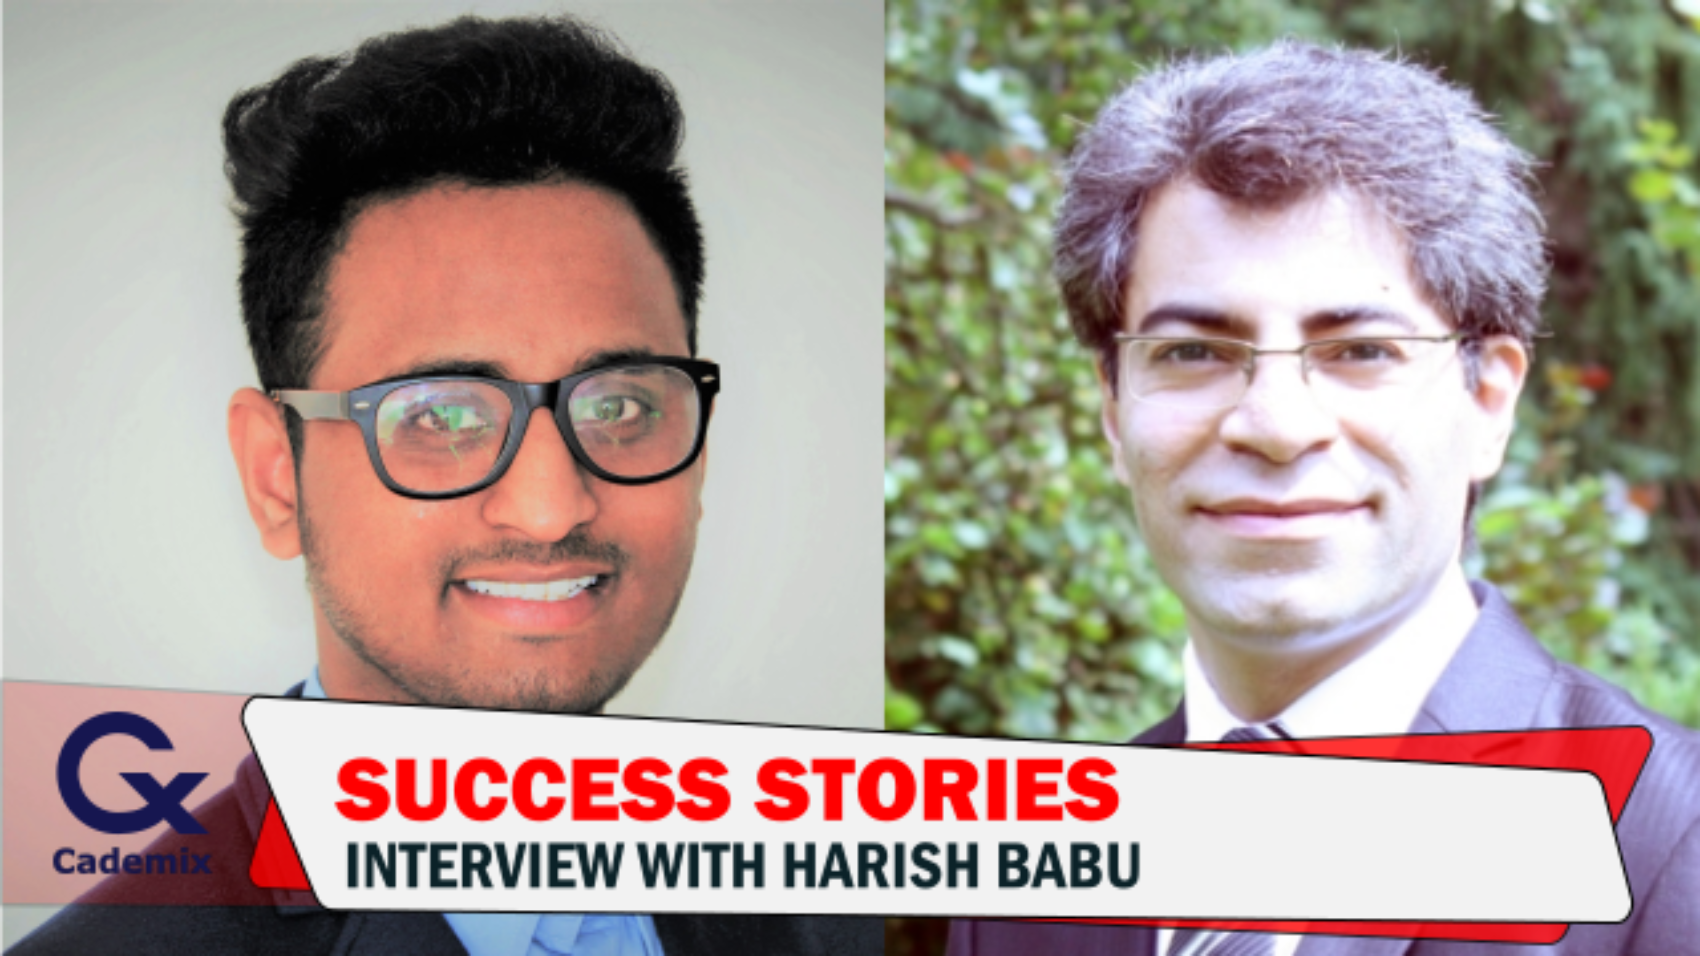 Interview Harish Babu